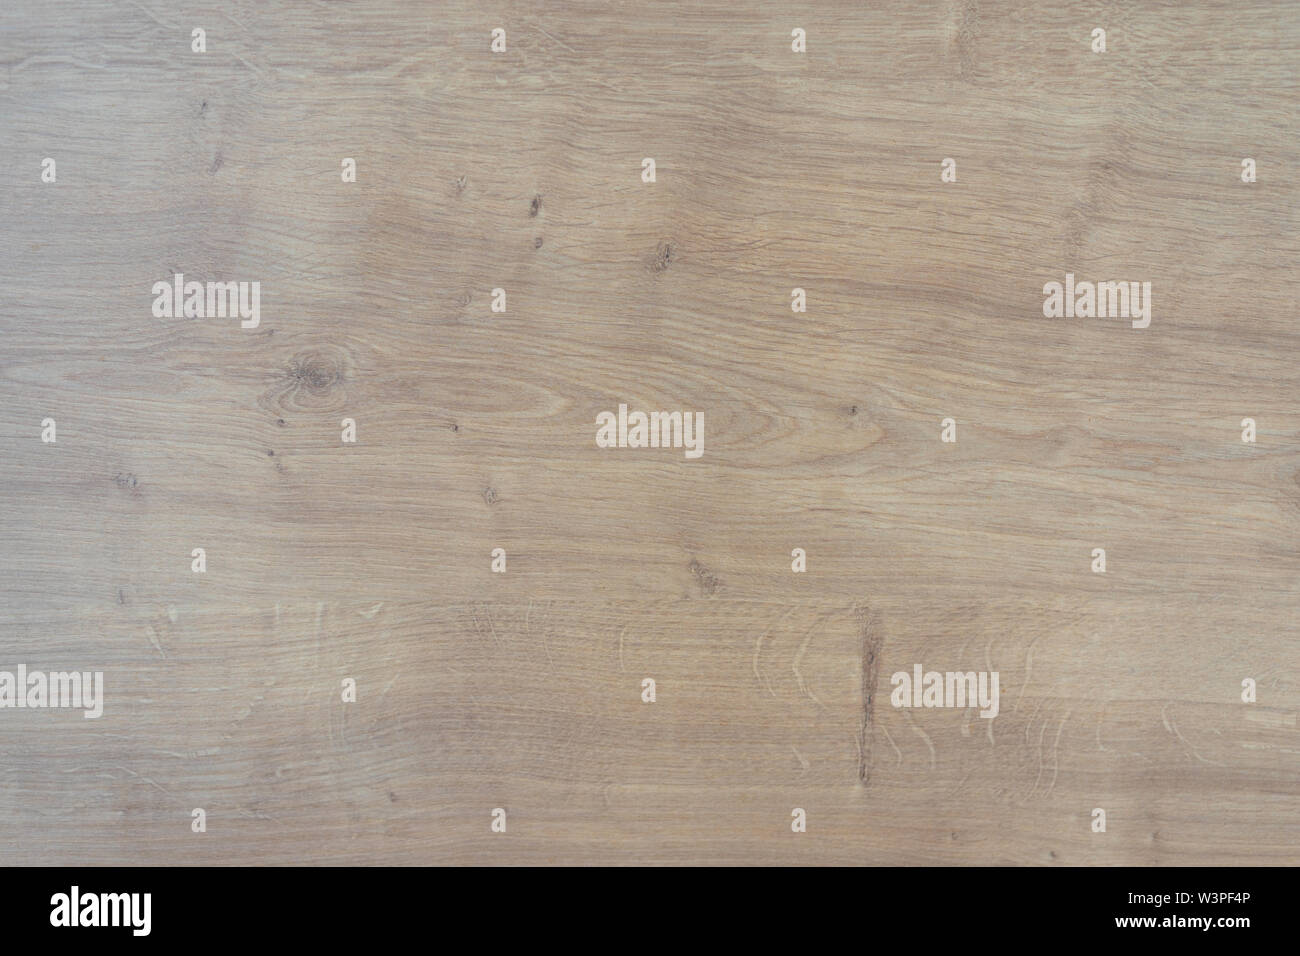 texture of a wooden surface solid oak close up - Stock Image